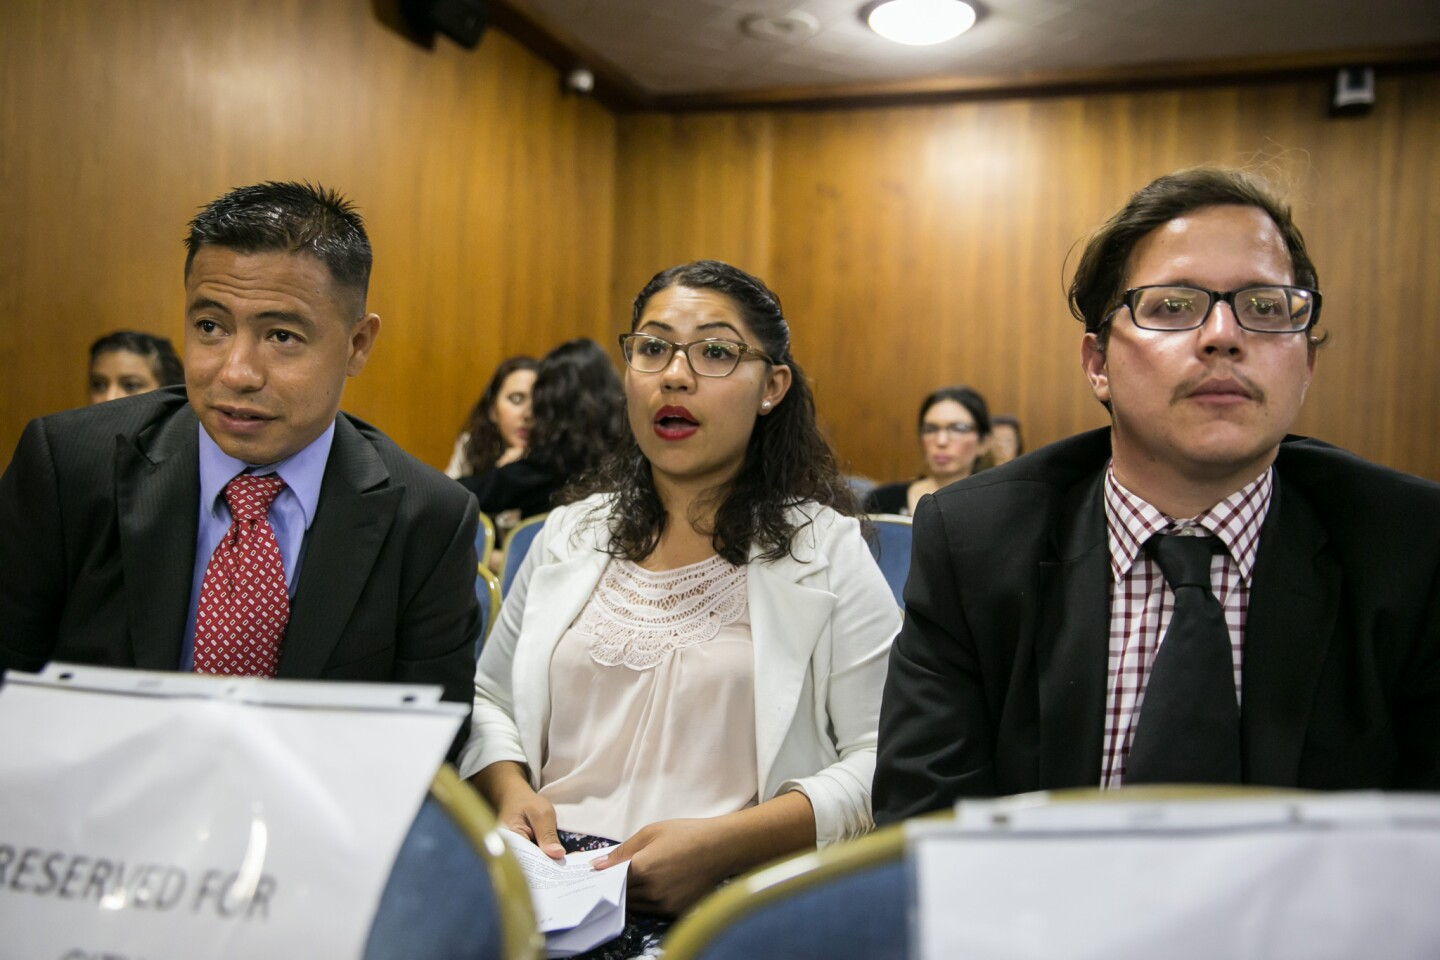 Francisco Medina, left, and Julian Zatarain, right, listens to council members' comments after their appointment as city commissioners at Huntington Park City Hall.